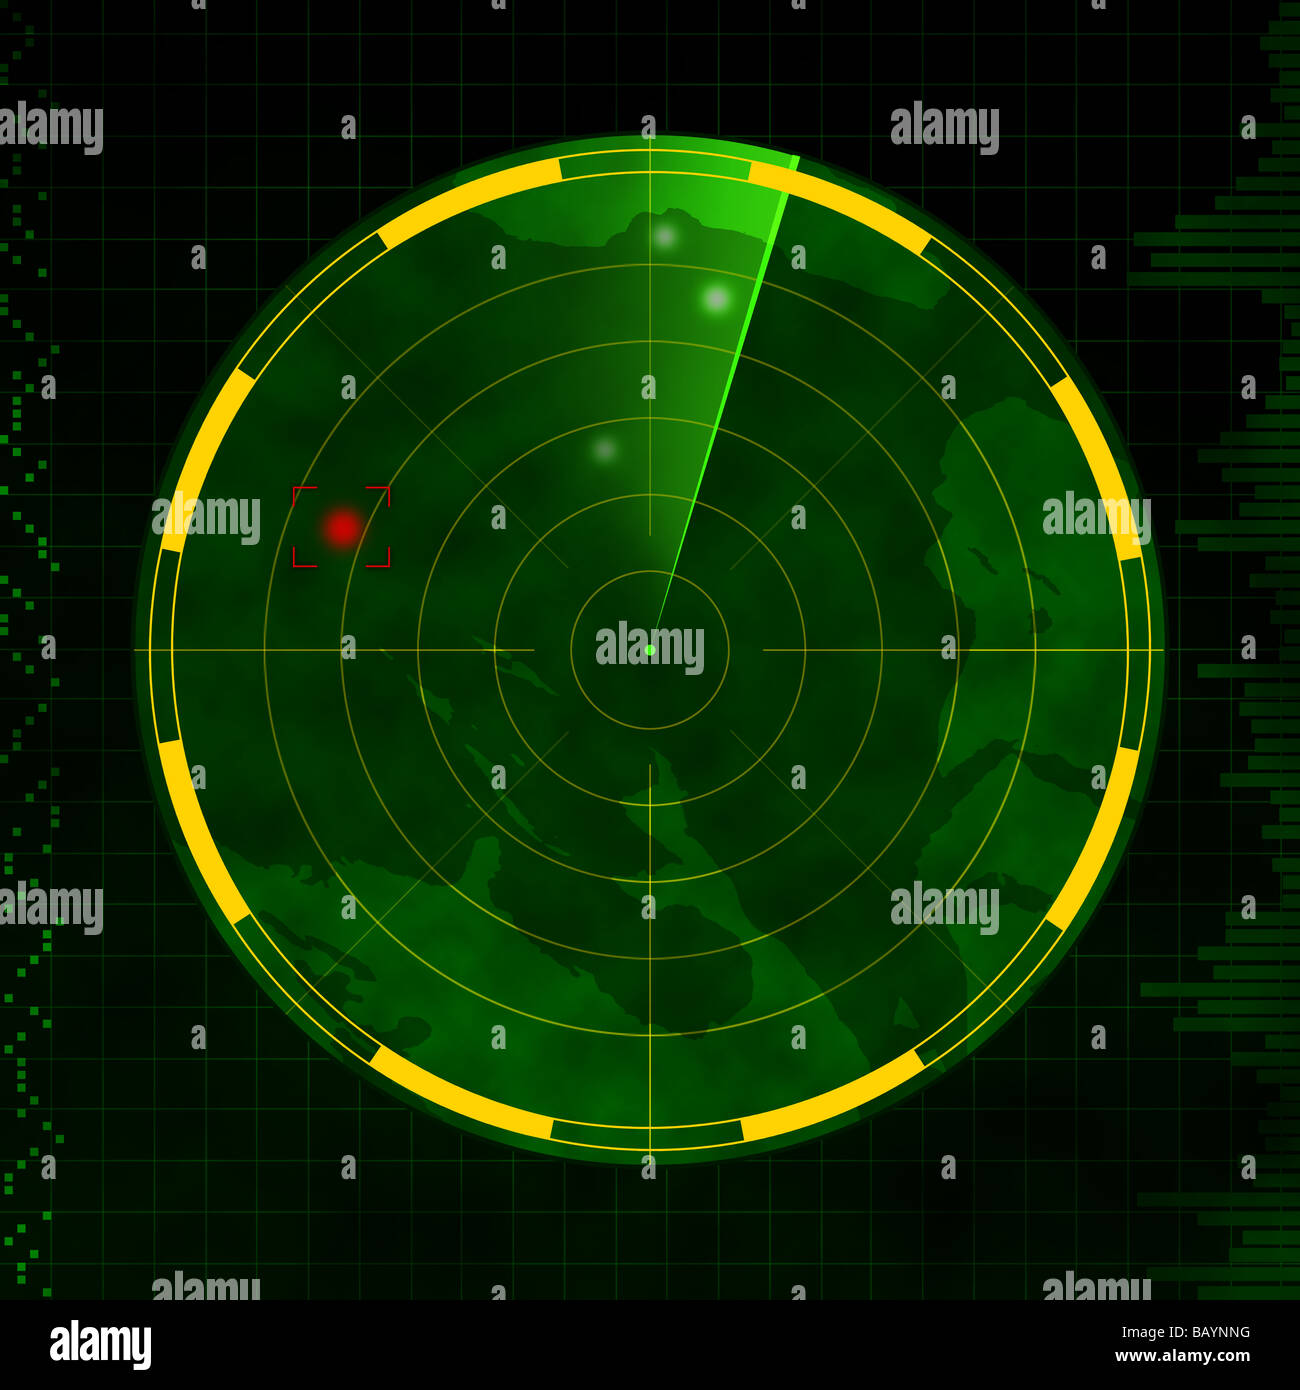 Radar with red target blip and green sweeping arm. - Stock Image